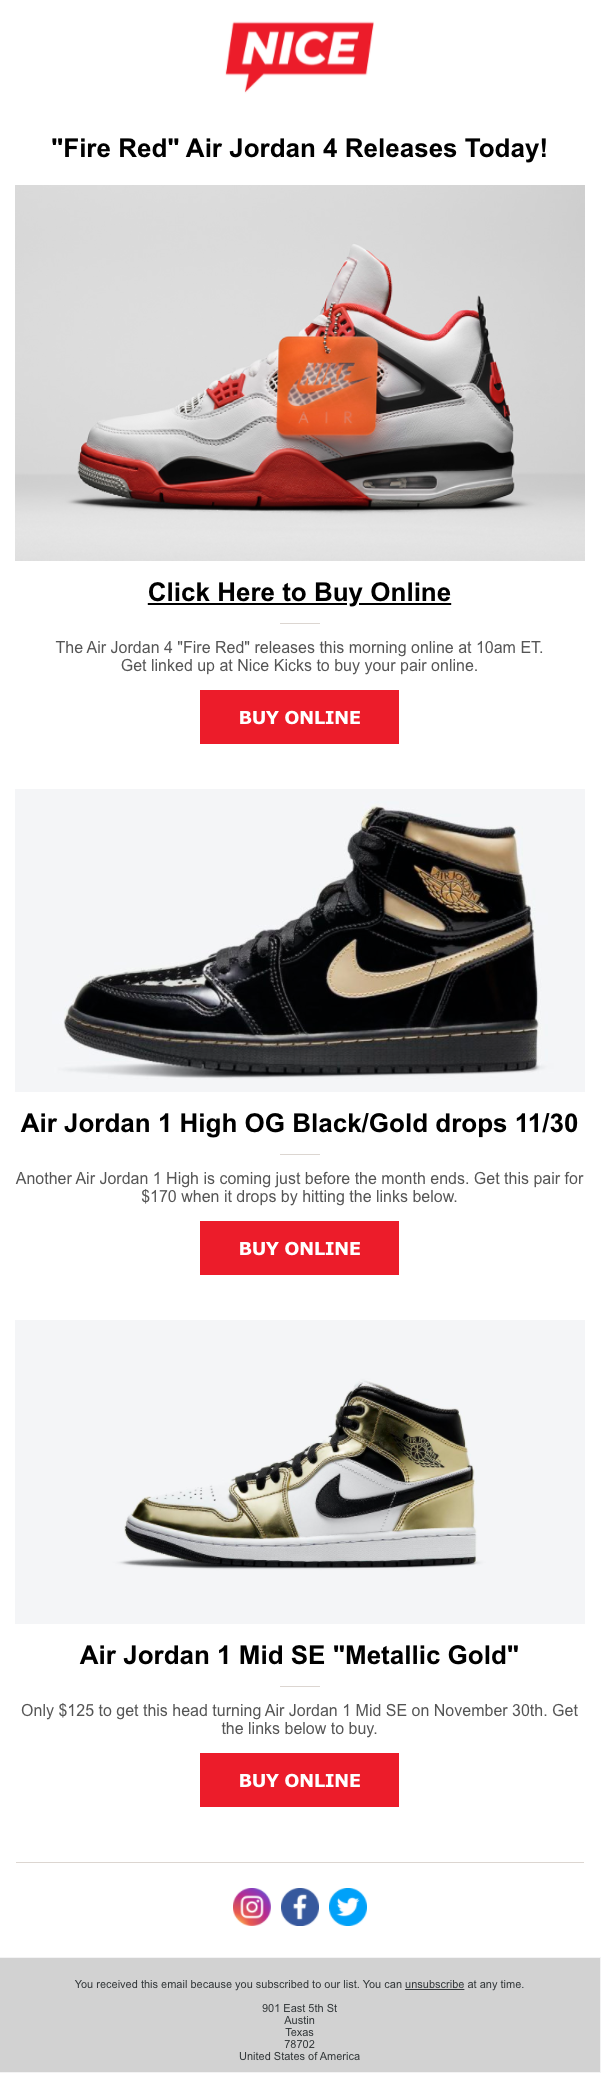 Example of an email sent by Nice Kicks that could be used to segment subscribers based on campaign activity